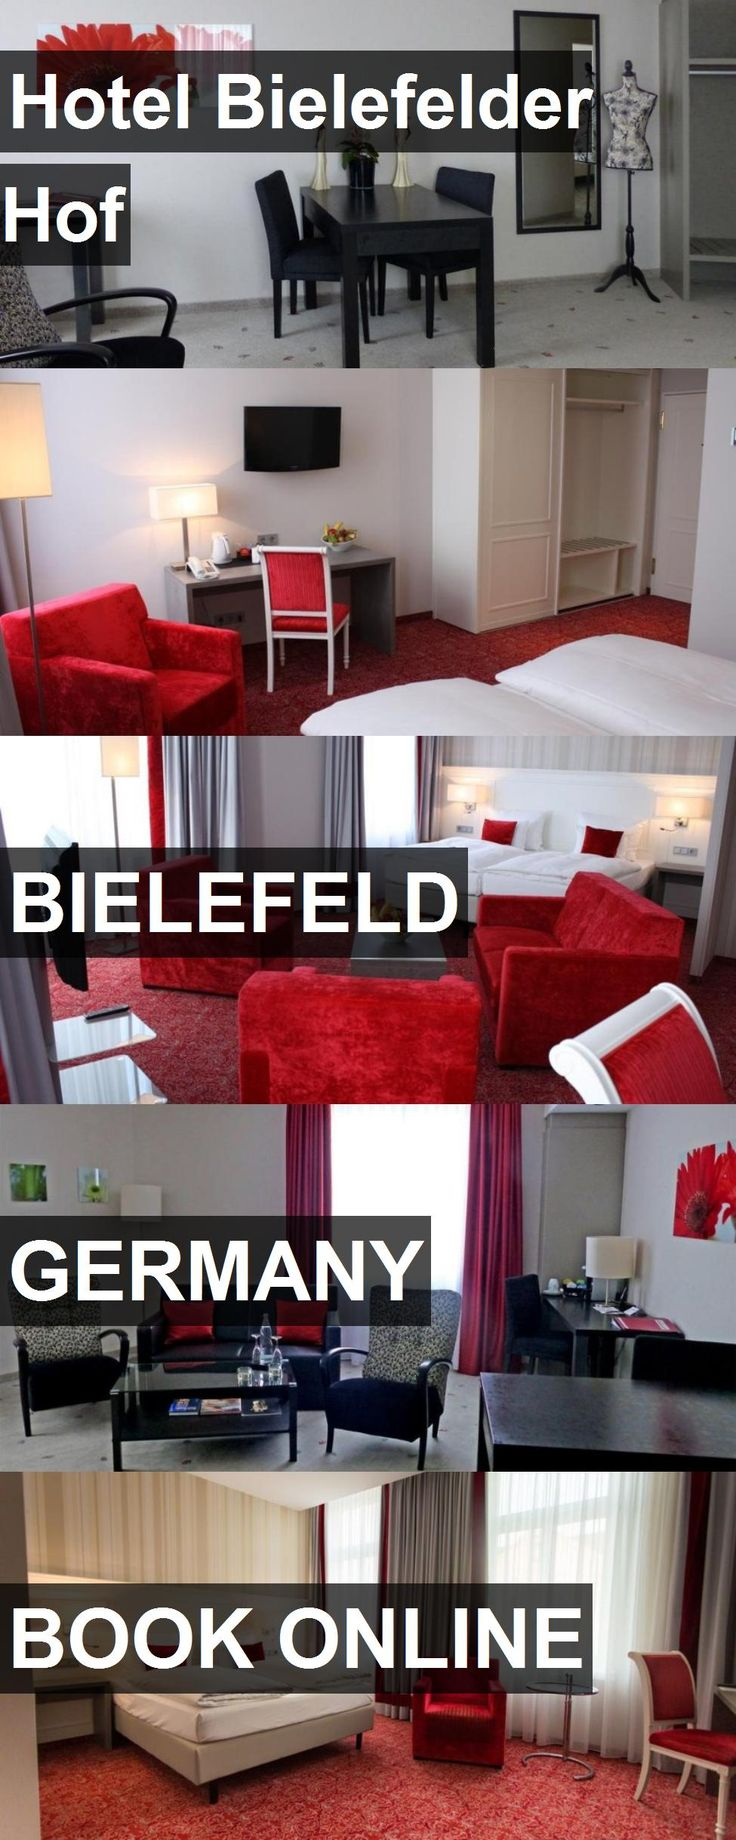 Hotel Bielefelder Hof in Bielefeld, Germany. For more information, photos, reviews and best prices please follow the link. #Germany #Bielefeld #travel #vacation #hotel